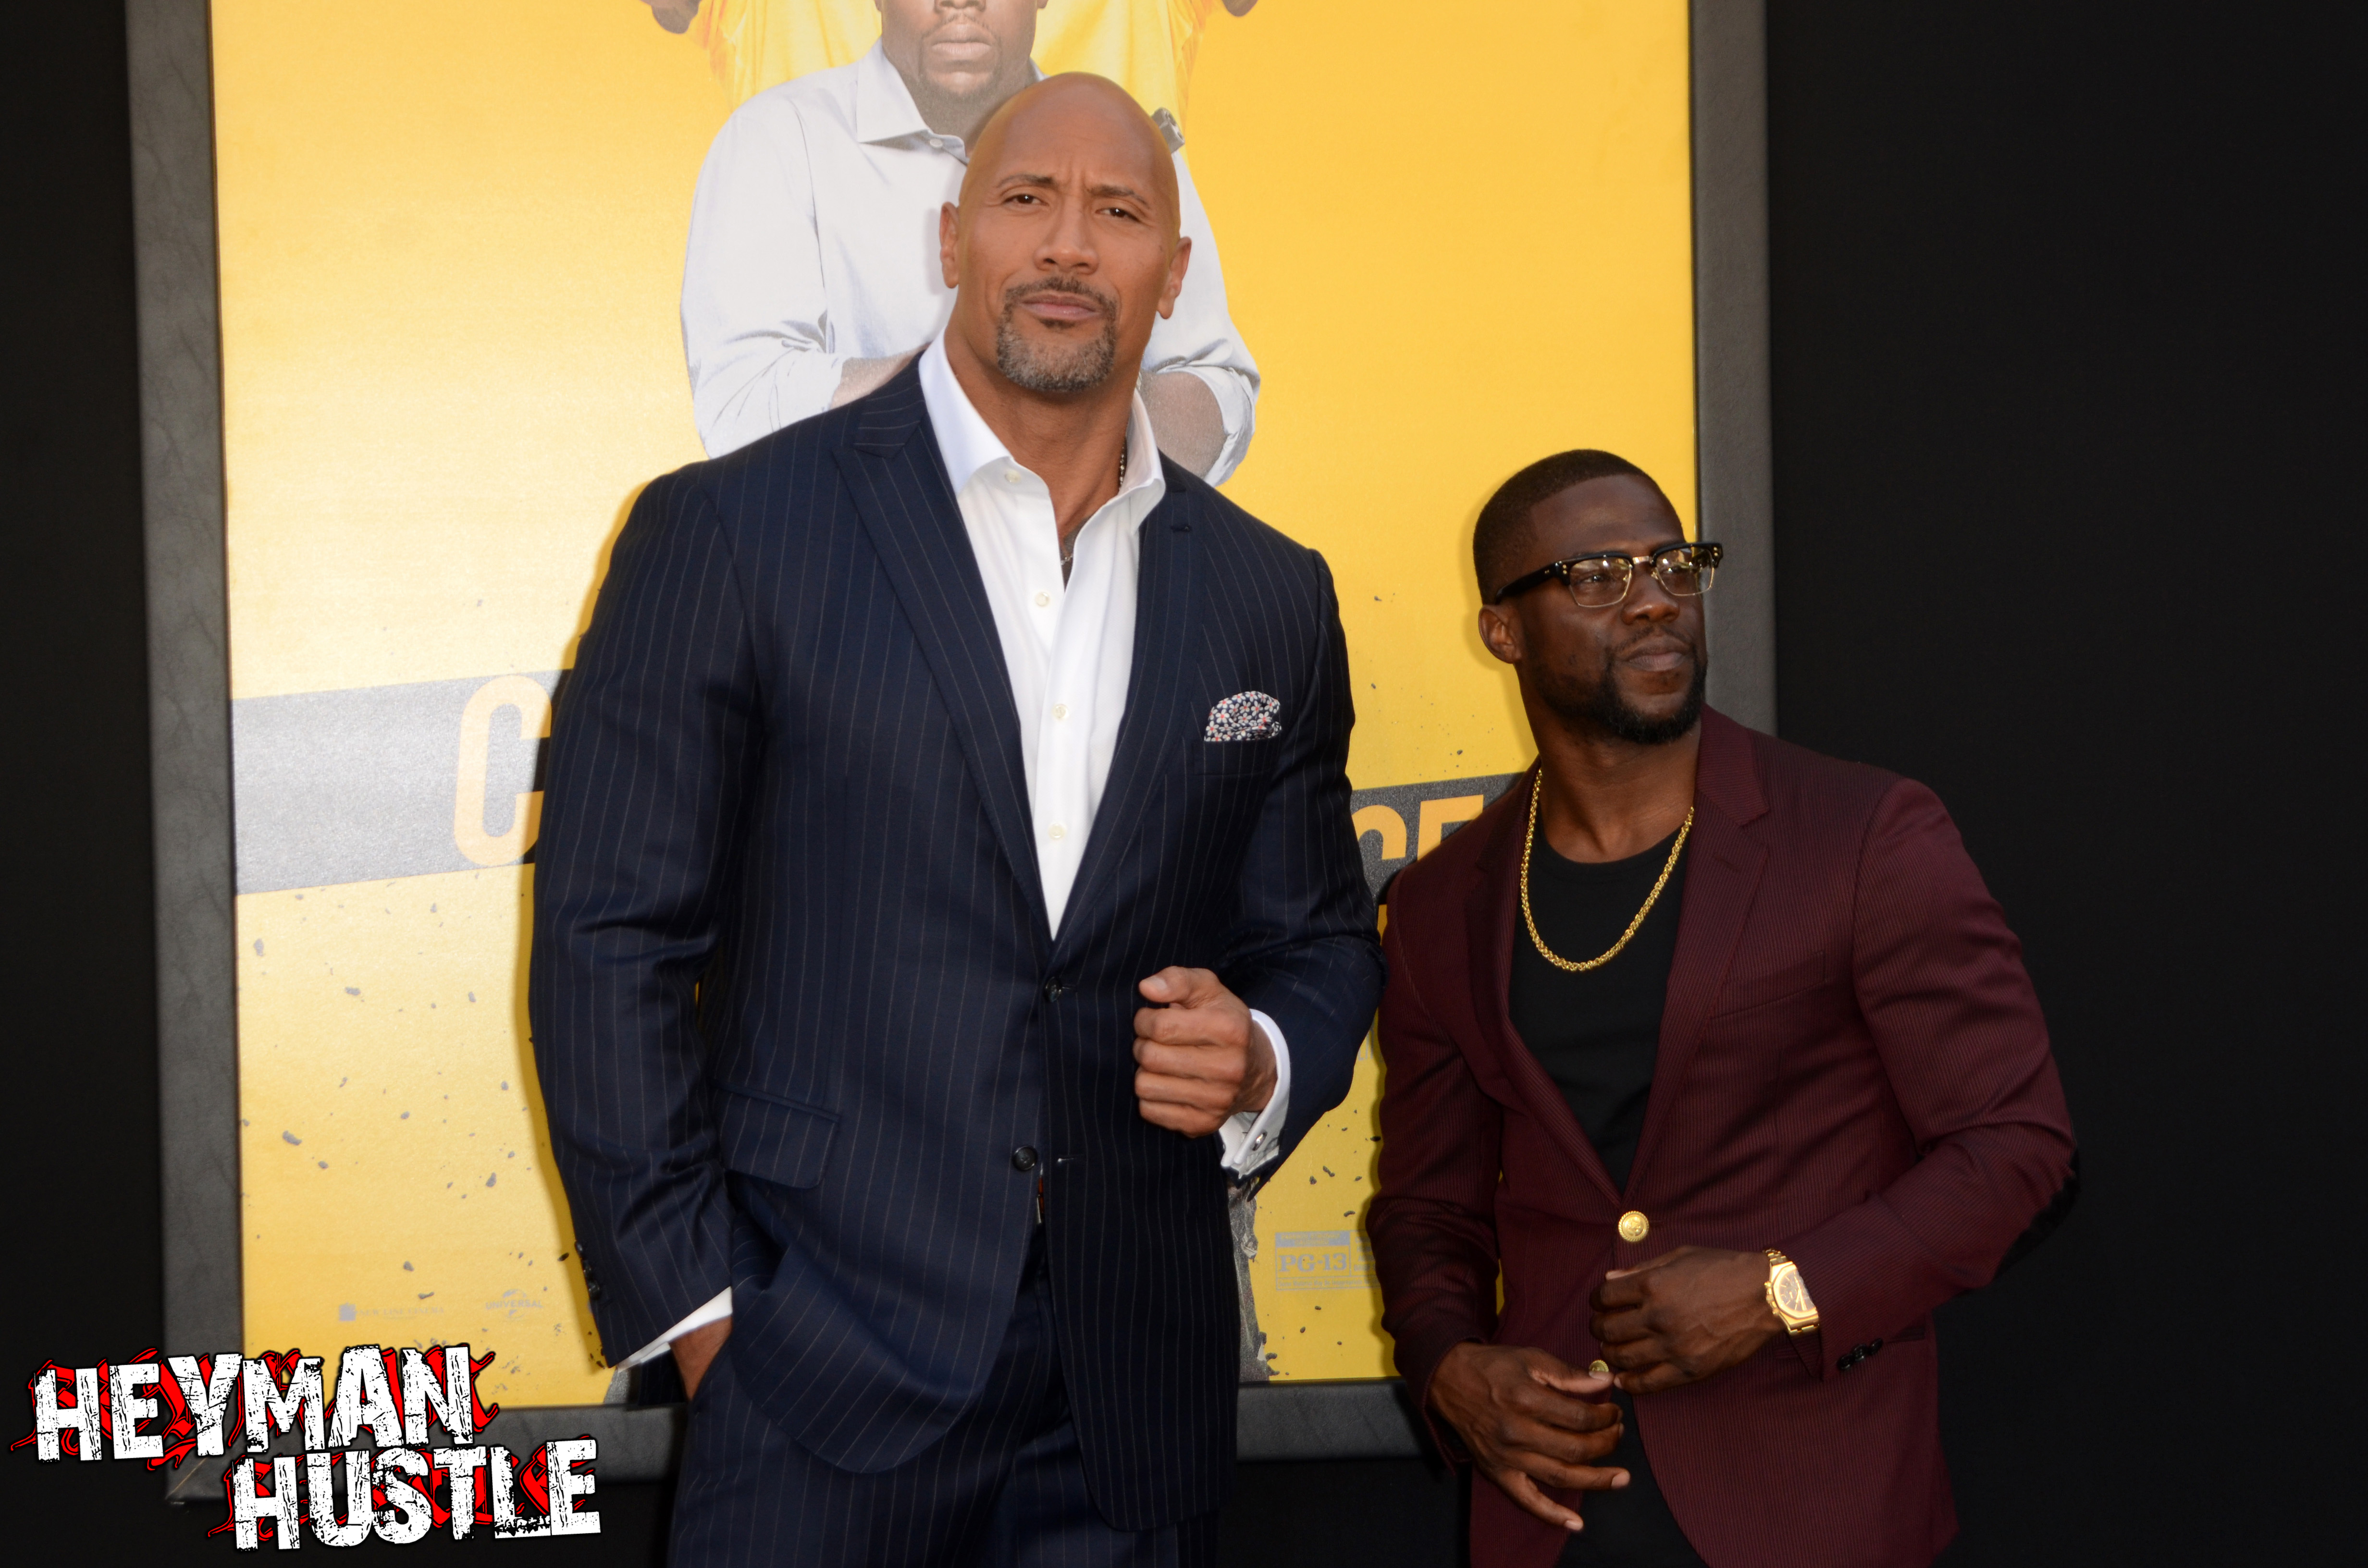 Central Intelligence Los Angeles Premiere USA - Central Intelligence Los Angeles Premiere - Westwood/ImageCollect